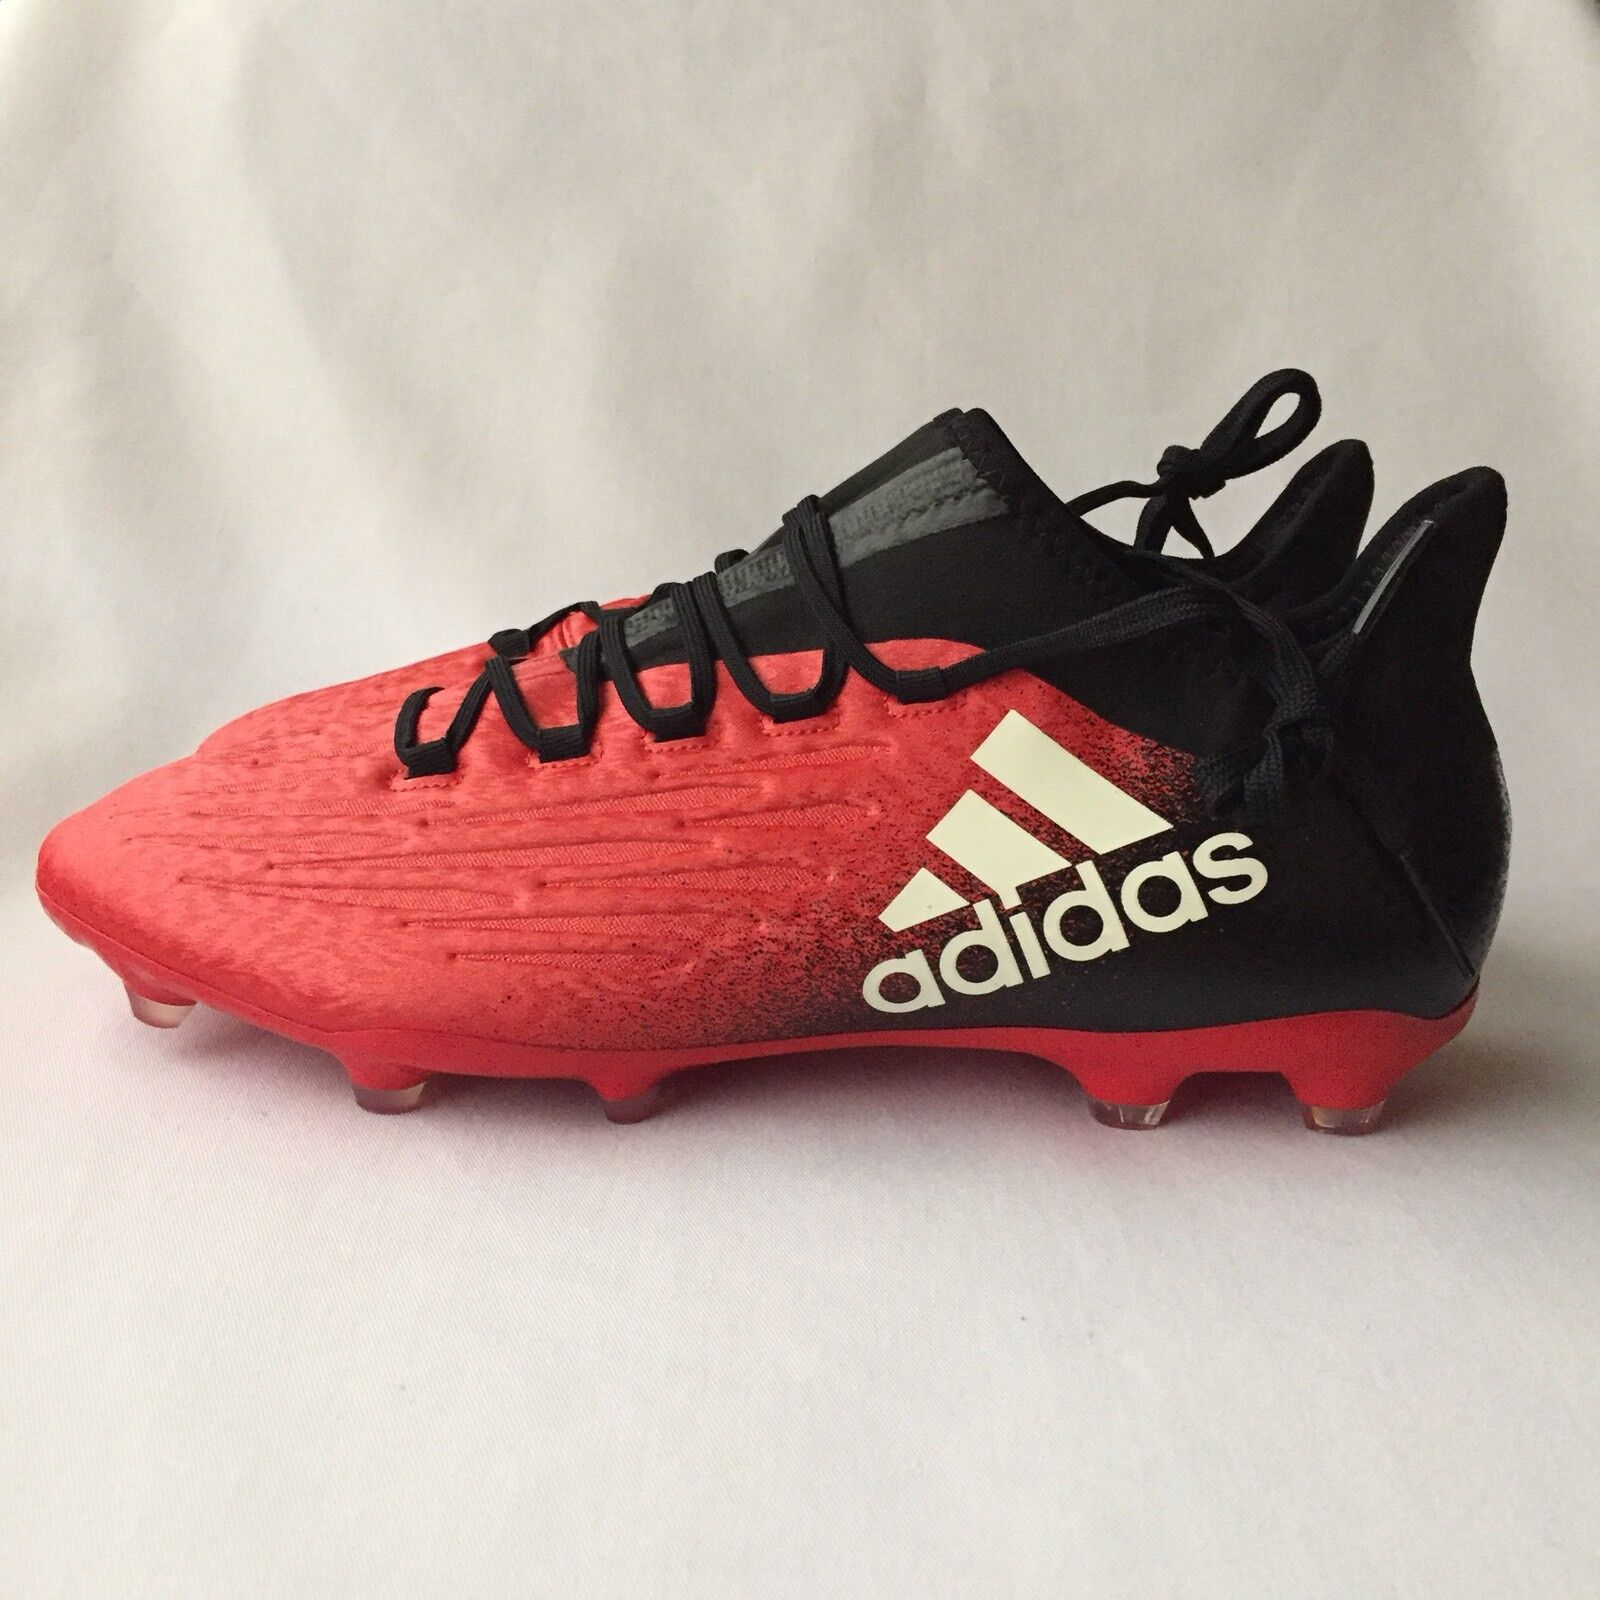 535f7356e701 adidas Men's X 16.2 FG Soccer Cleat 11.5 for sale online | eBay